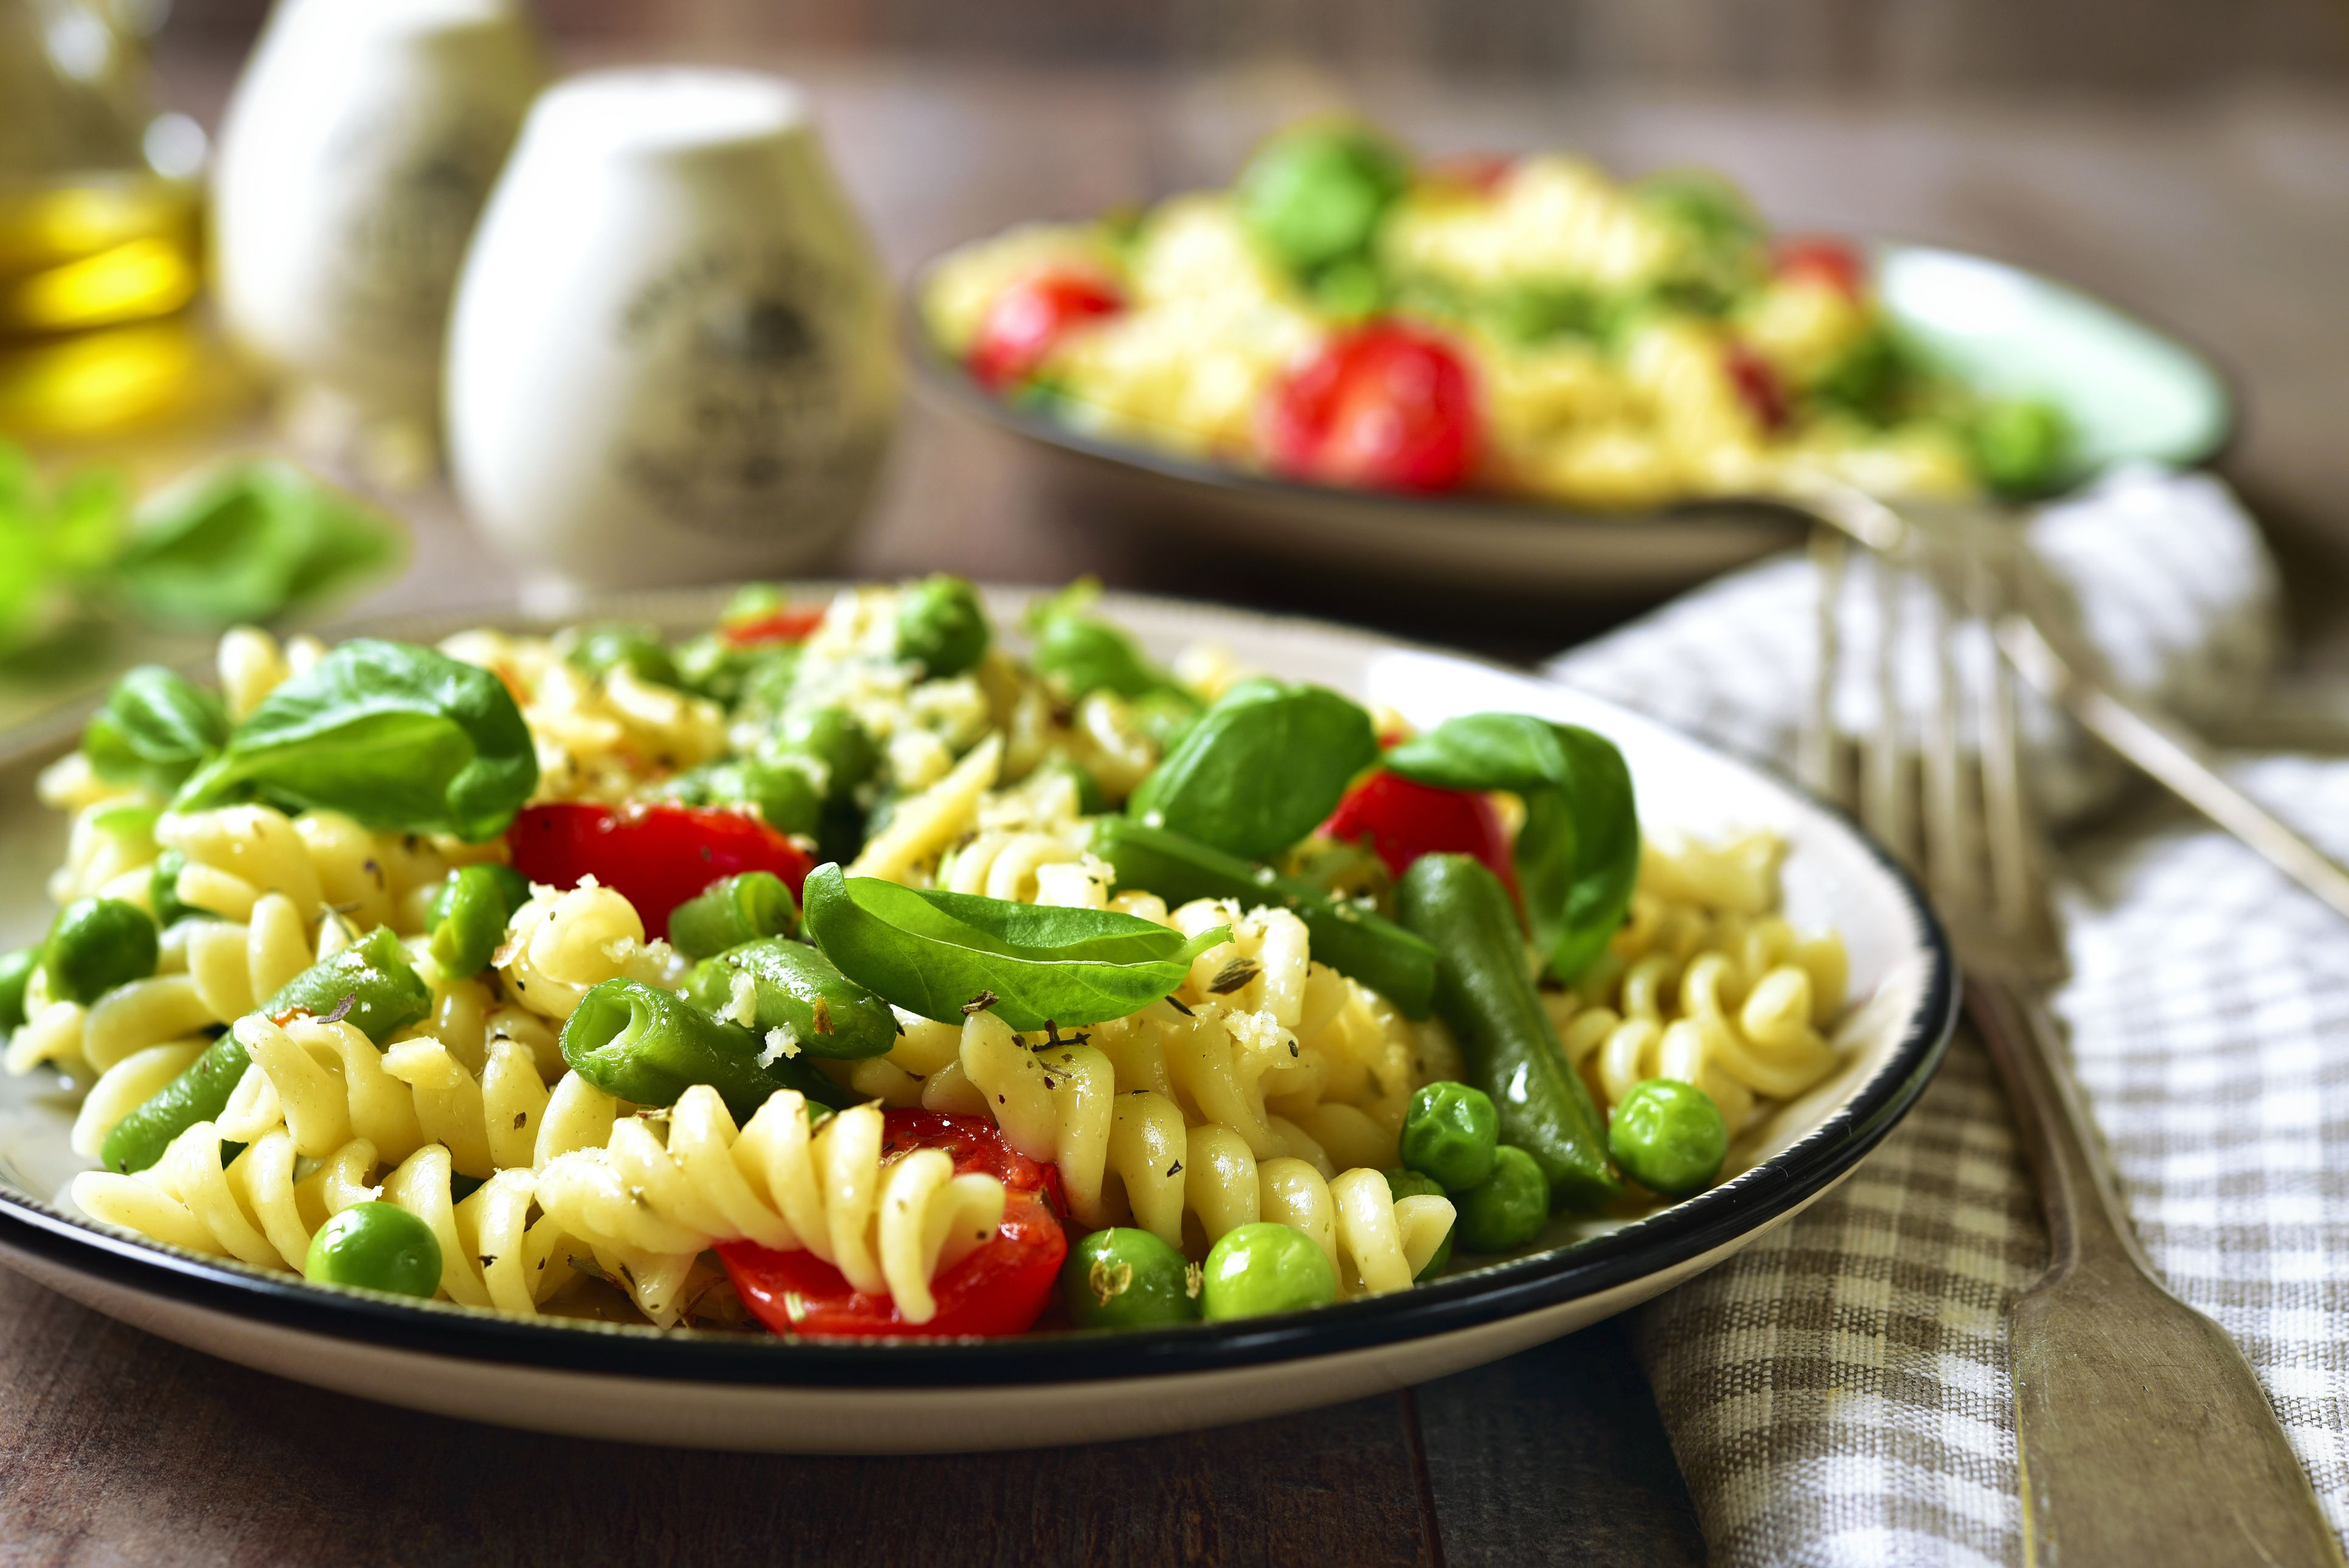 Is Pasta Healthy? How to Make Pasta Good For You, Per a